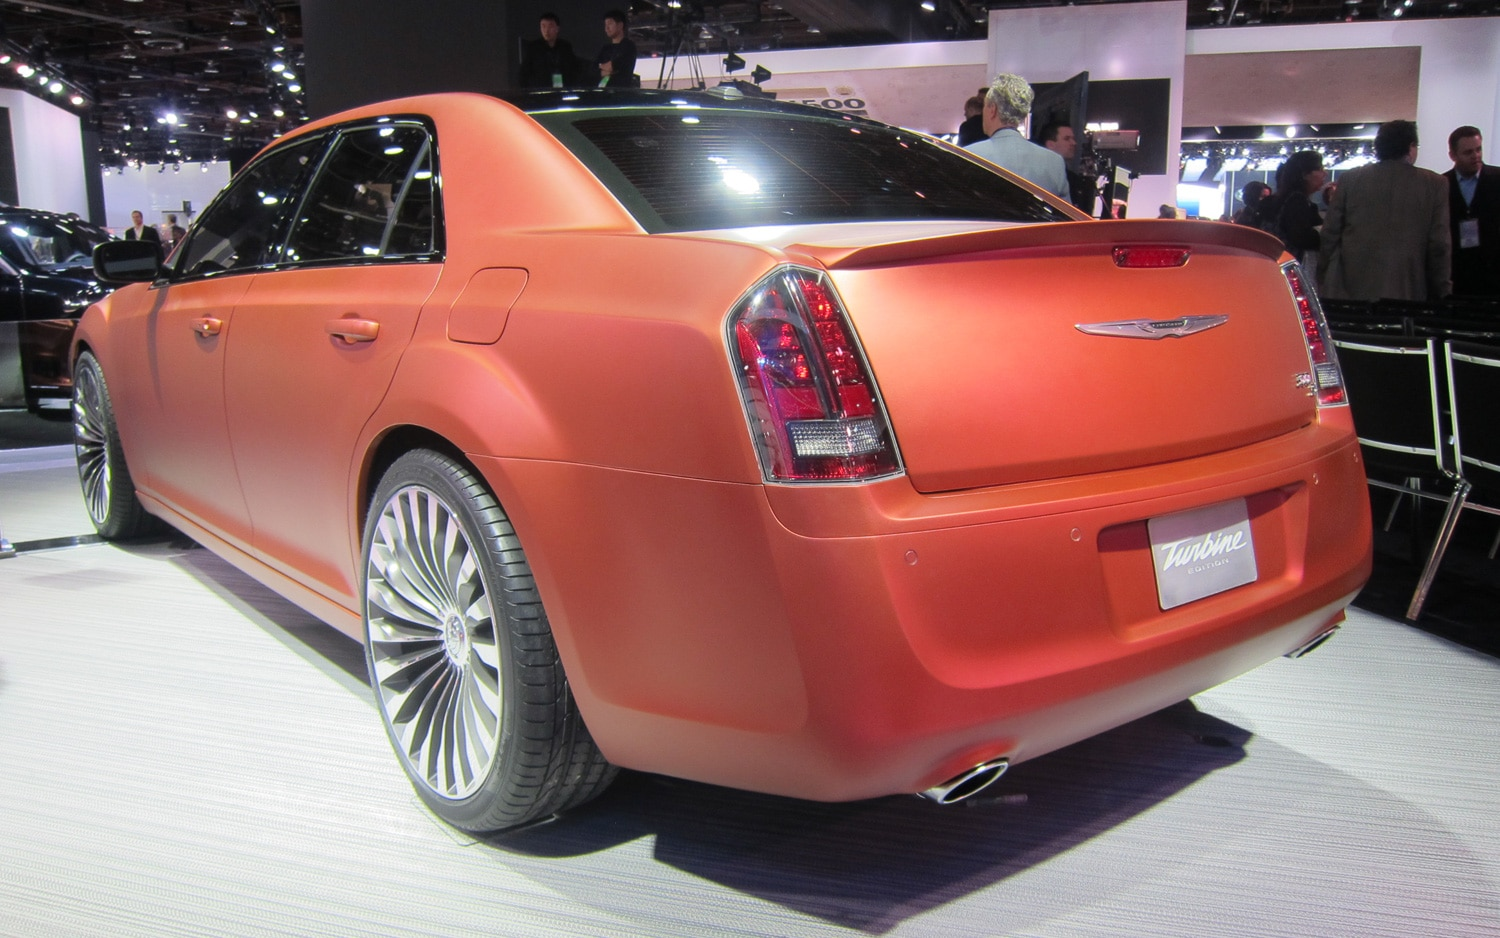 detroit 2013 chrysler pays tribute to its past with 300s turbine concept. Black Bedroom Furniture Sets. Home Design Ideas